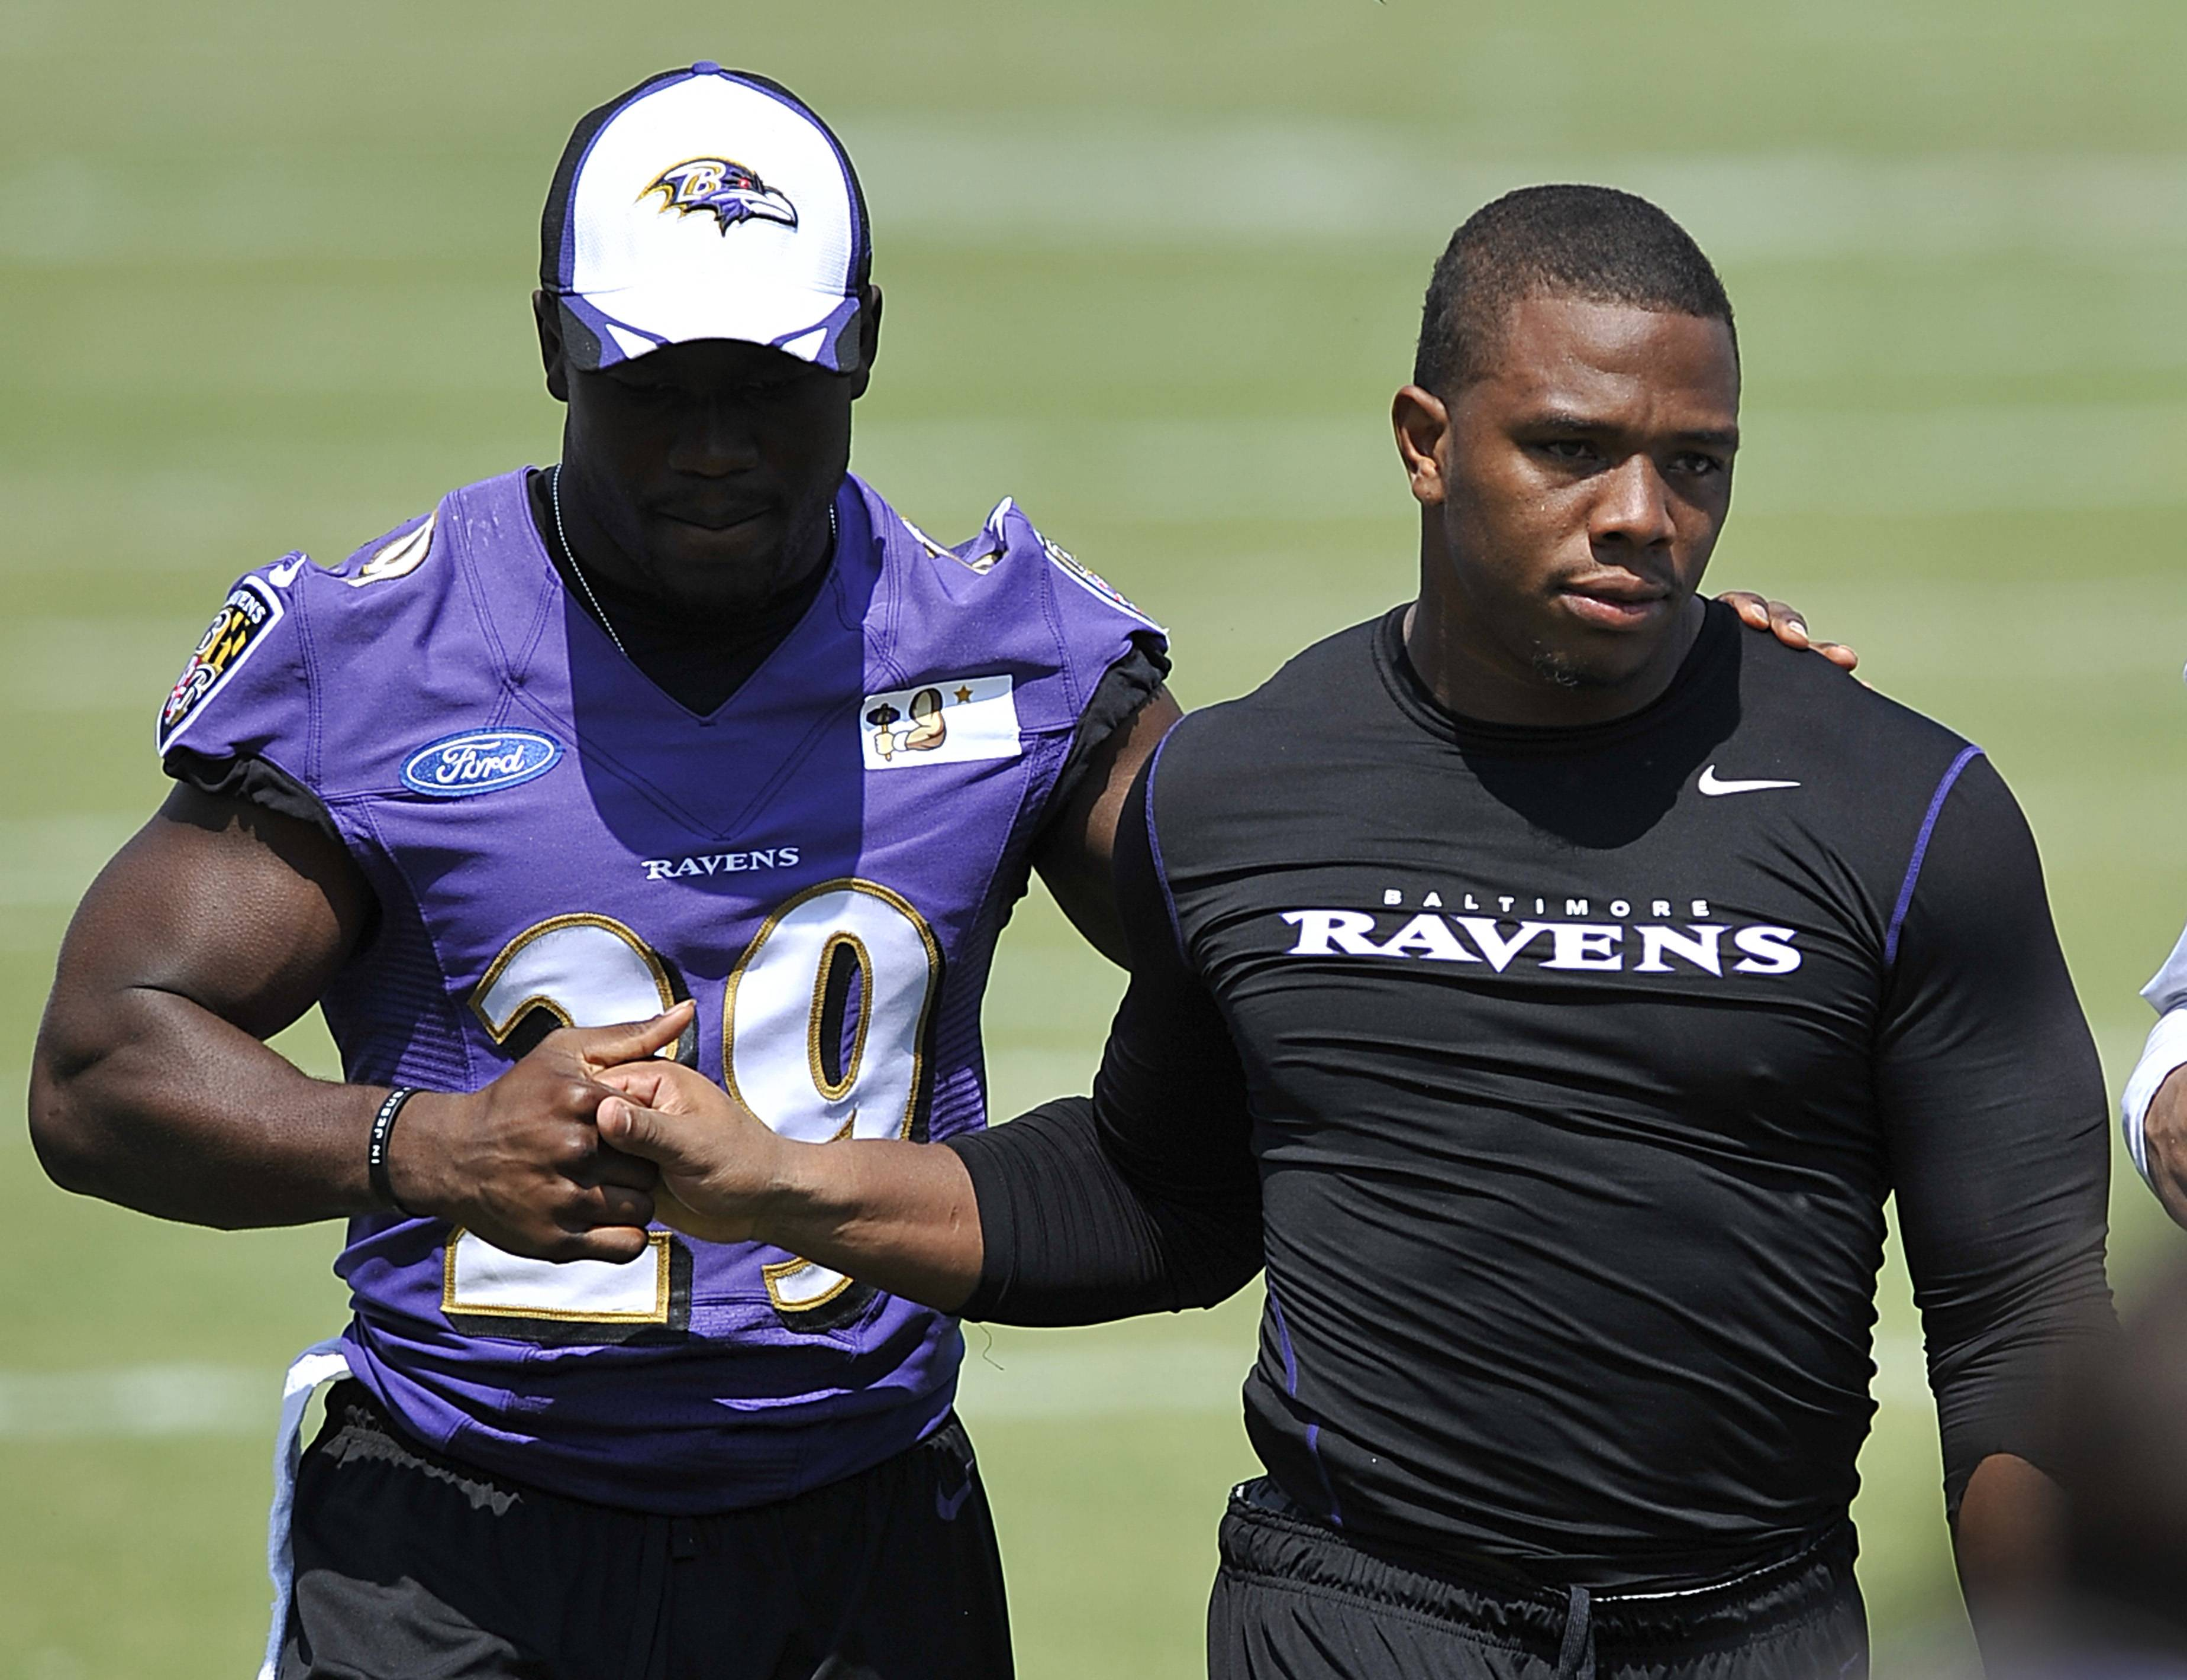 Baltimore Ravens running back Ray Rice, right, walks off the field with Justin Forsett before addressing the media at a news conference after NFL football training camp practice, Thursday, July 31, 2014, in Owings Mills, Md.